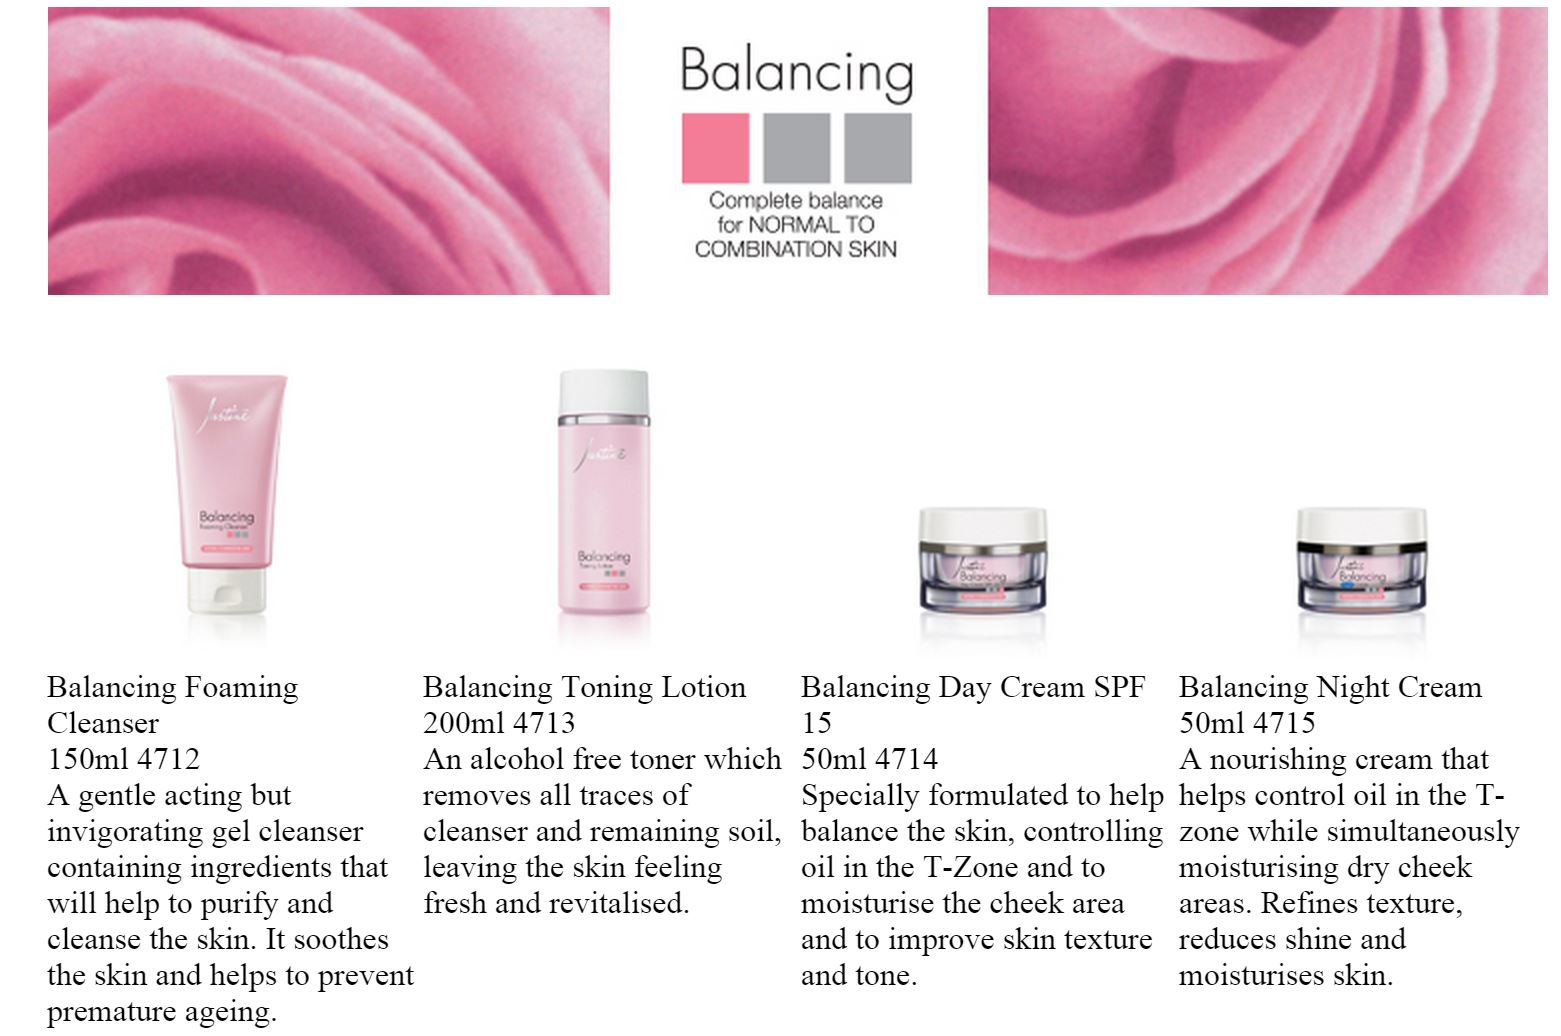 justine balancing range facial products at salon cleo durban 0315009998